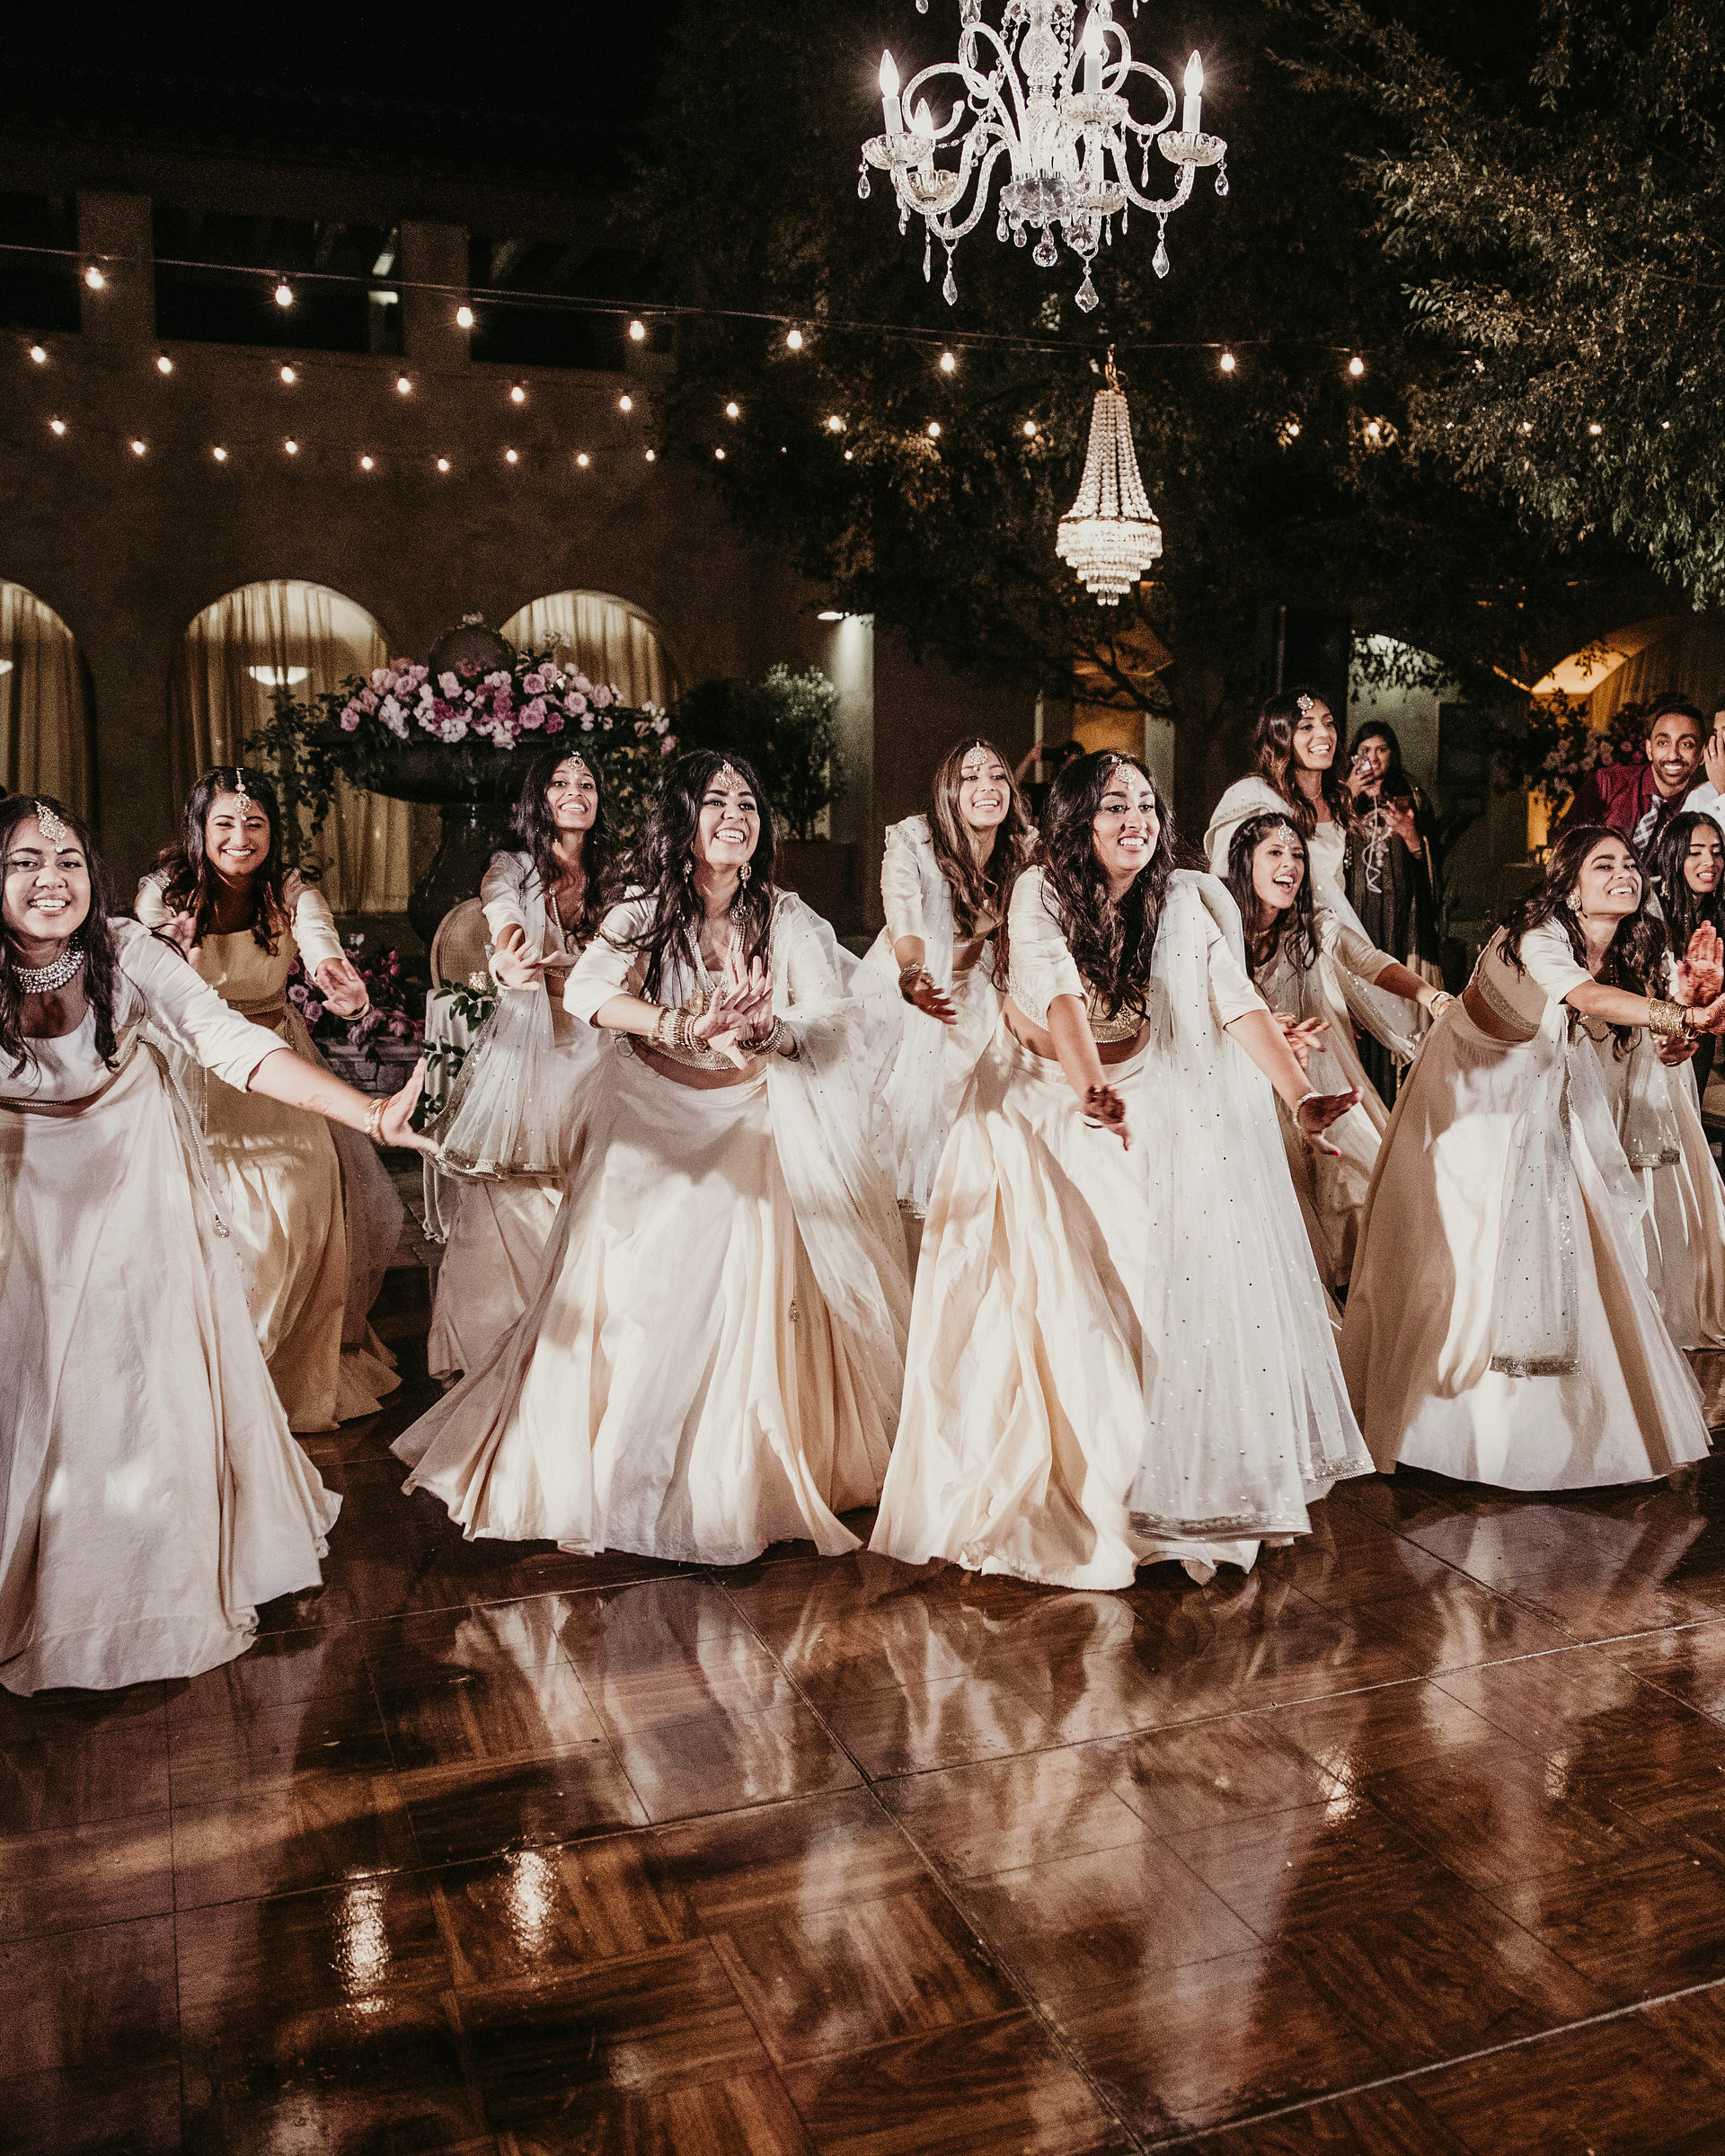 wedding reception bridesmaids choreographed dance